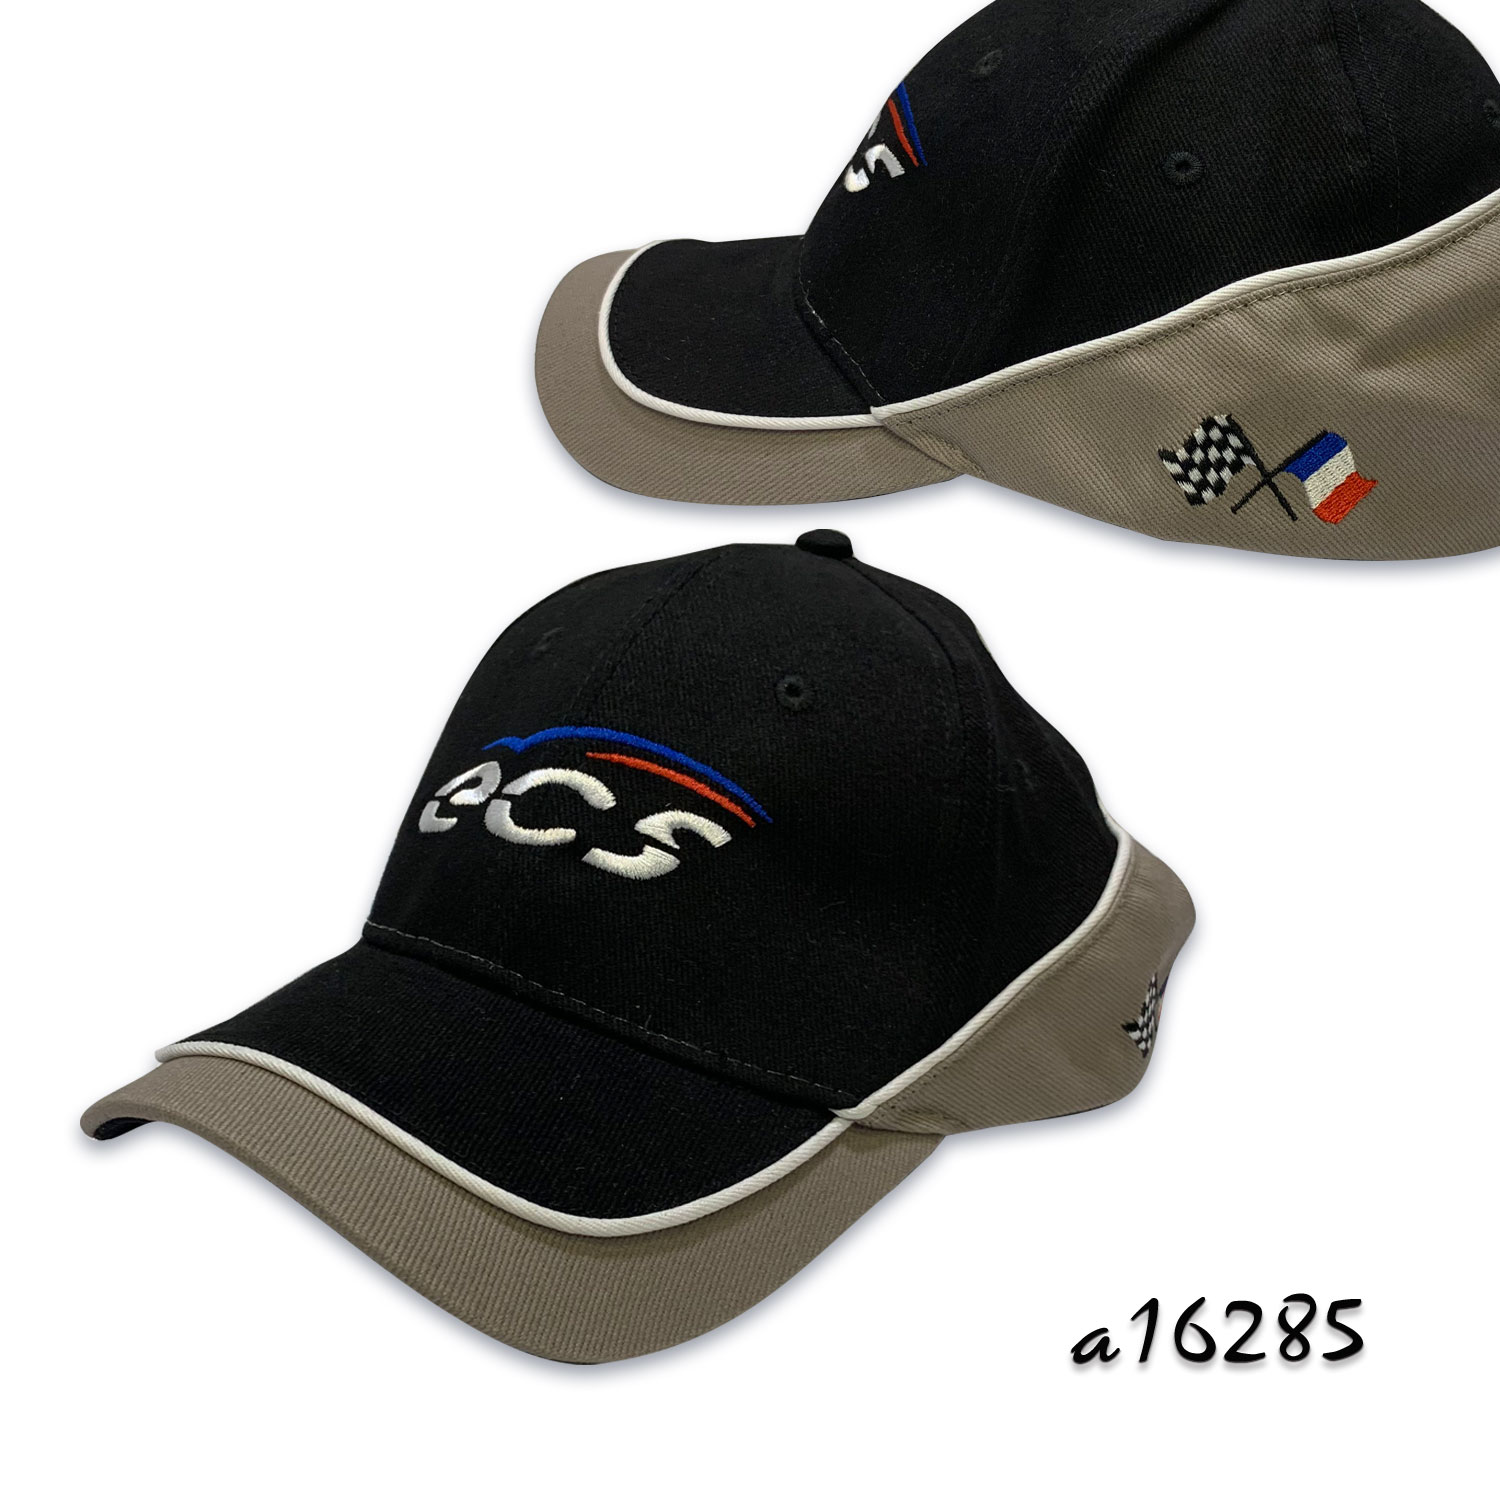 Racer cap with embroidery and two tone layer panel